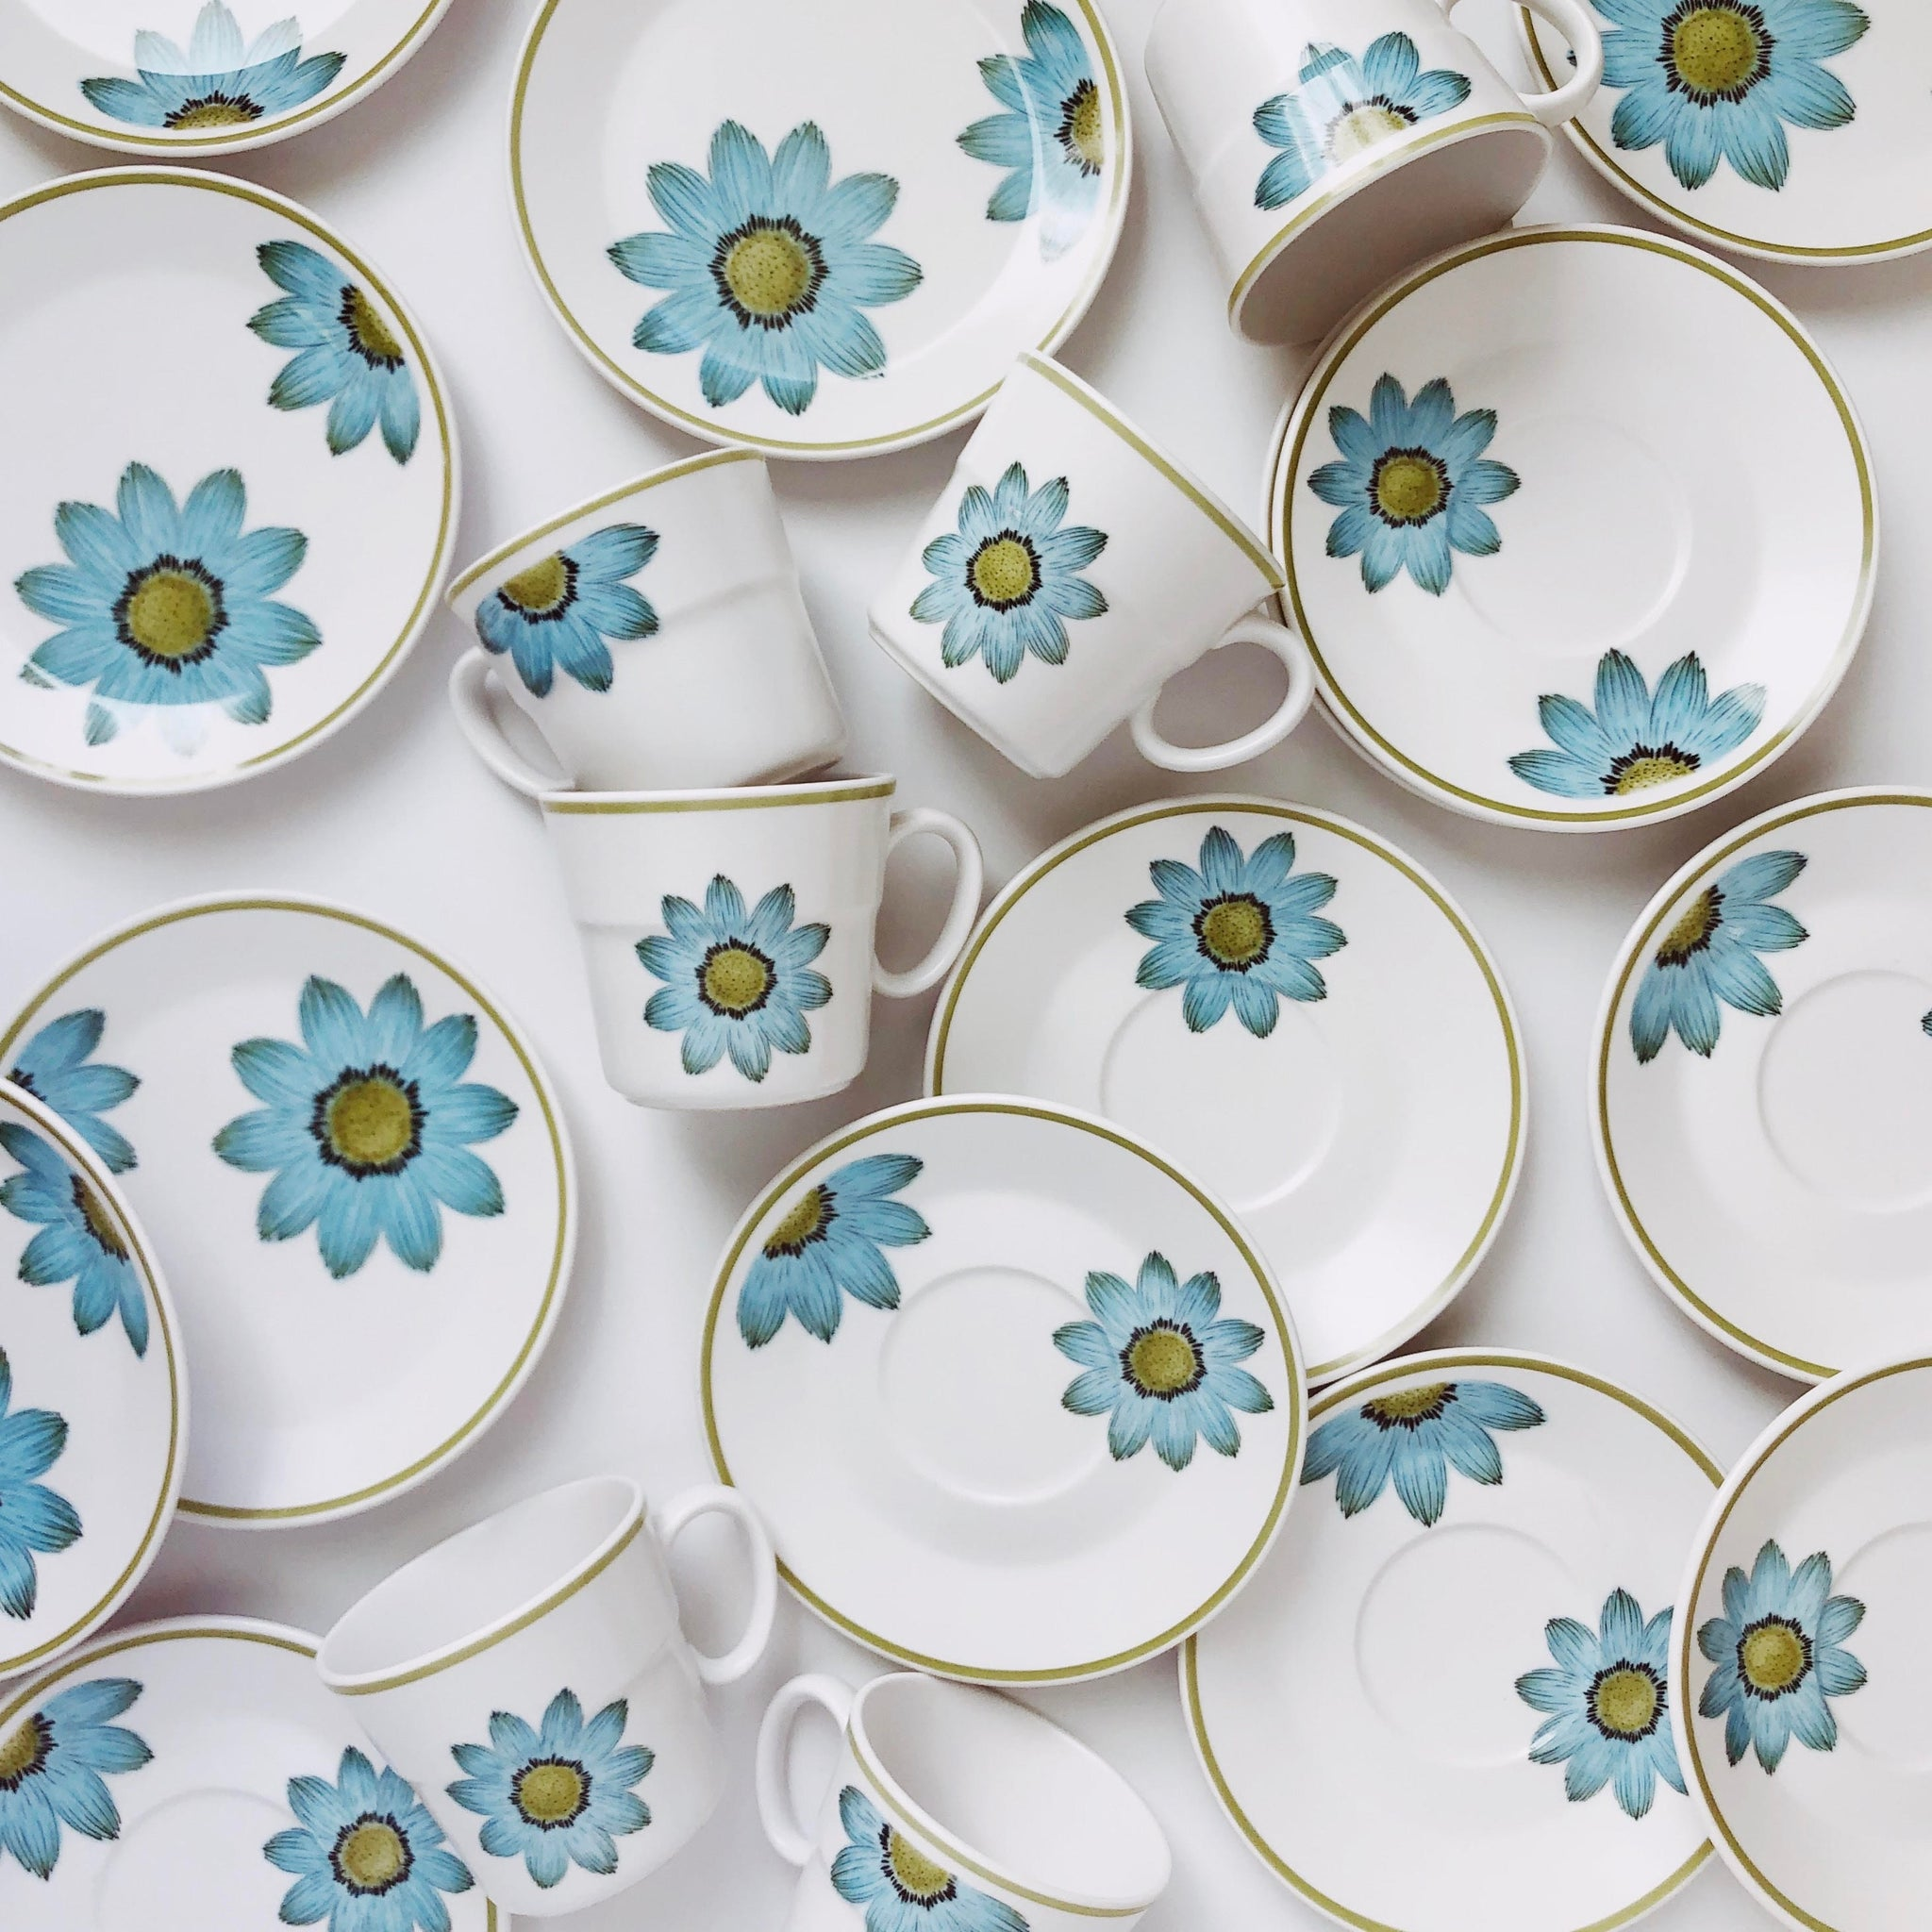 """Up-Sa Daisy"" vintage mid century modern Noritake dish collection"